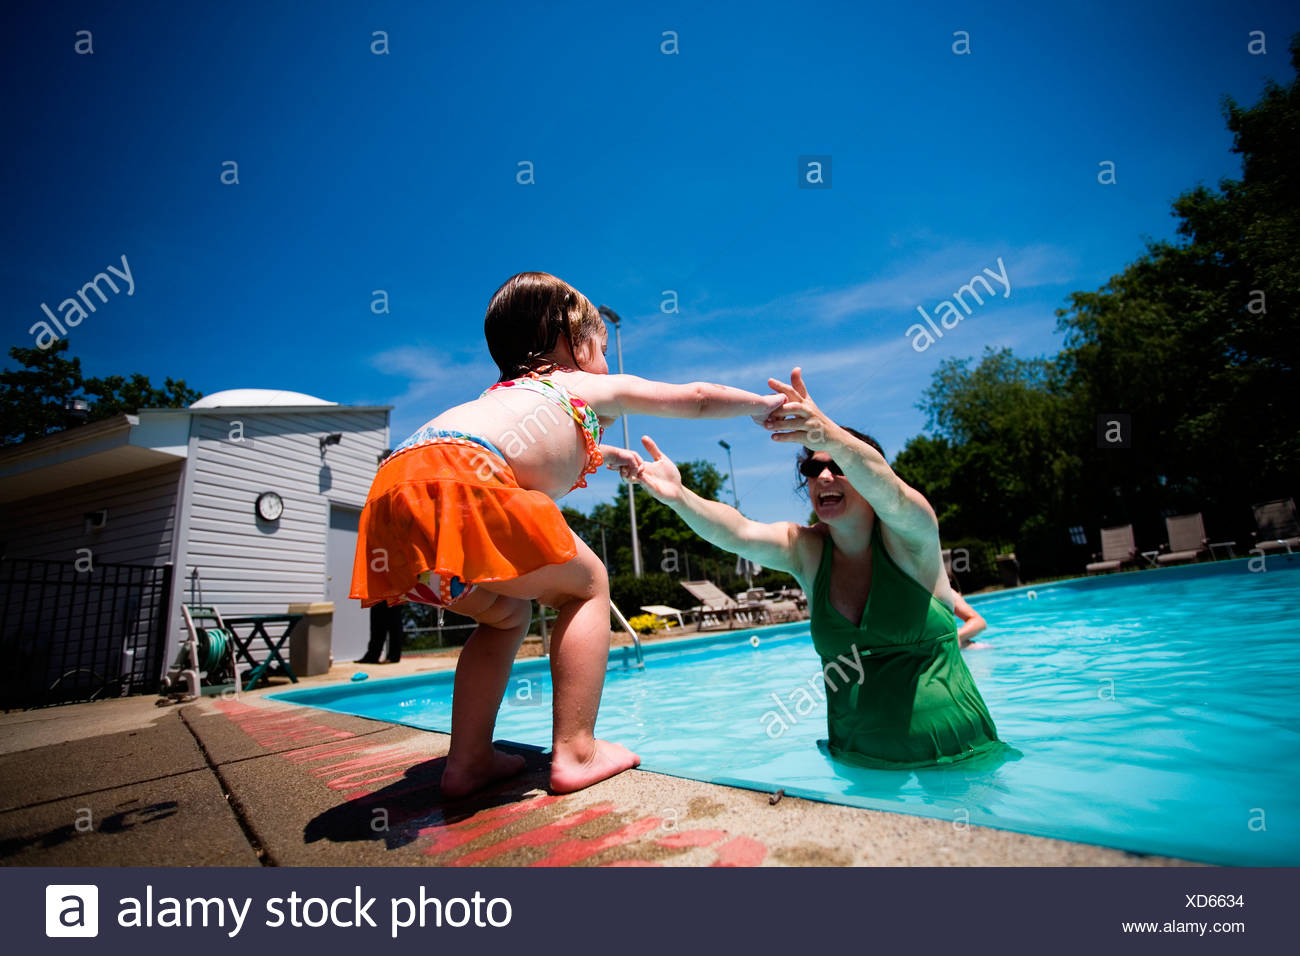 A small girl reaches for mom in the pool. - Stock Image